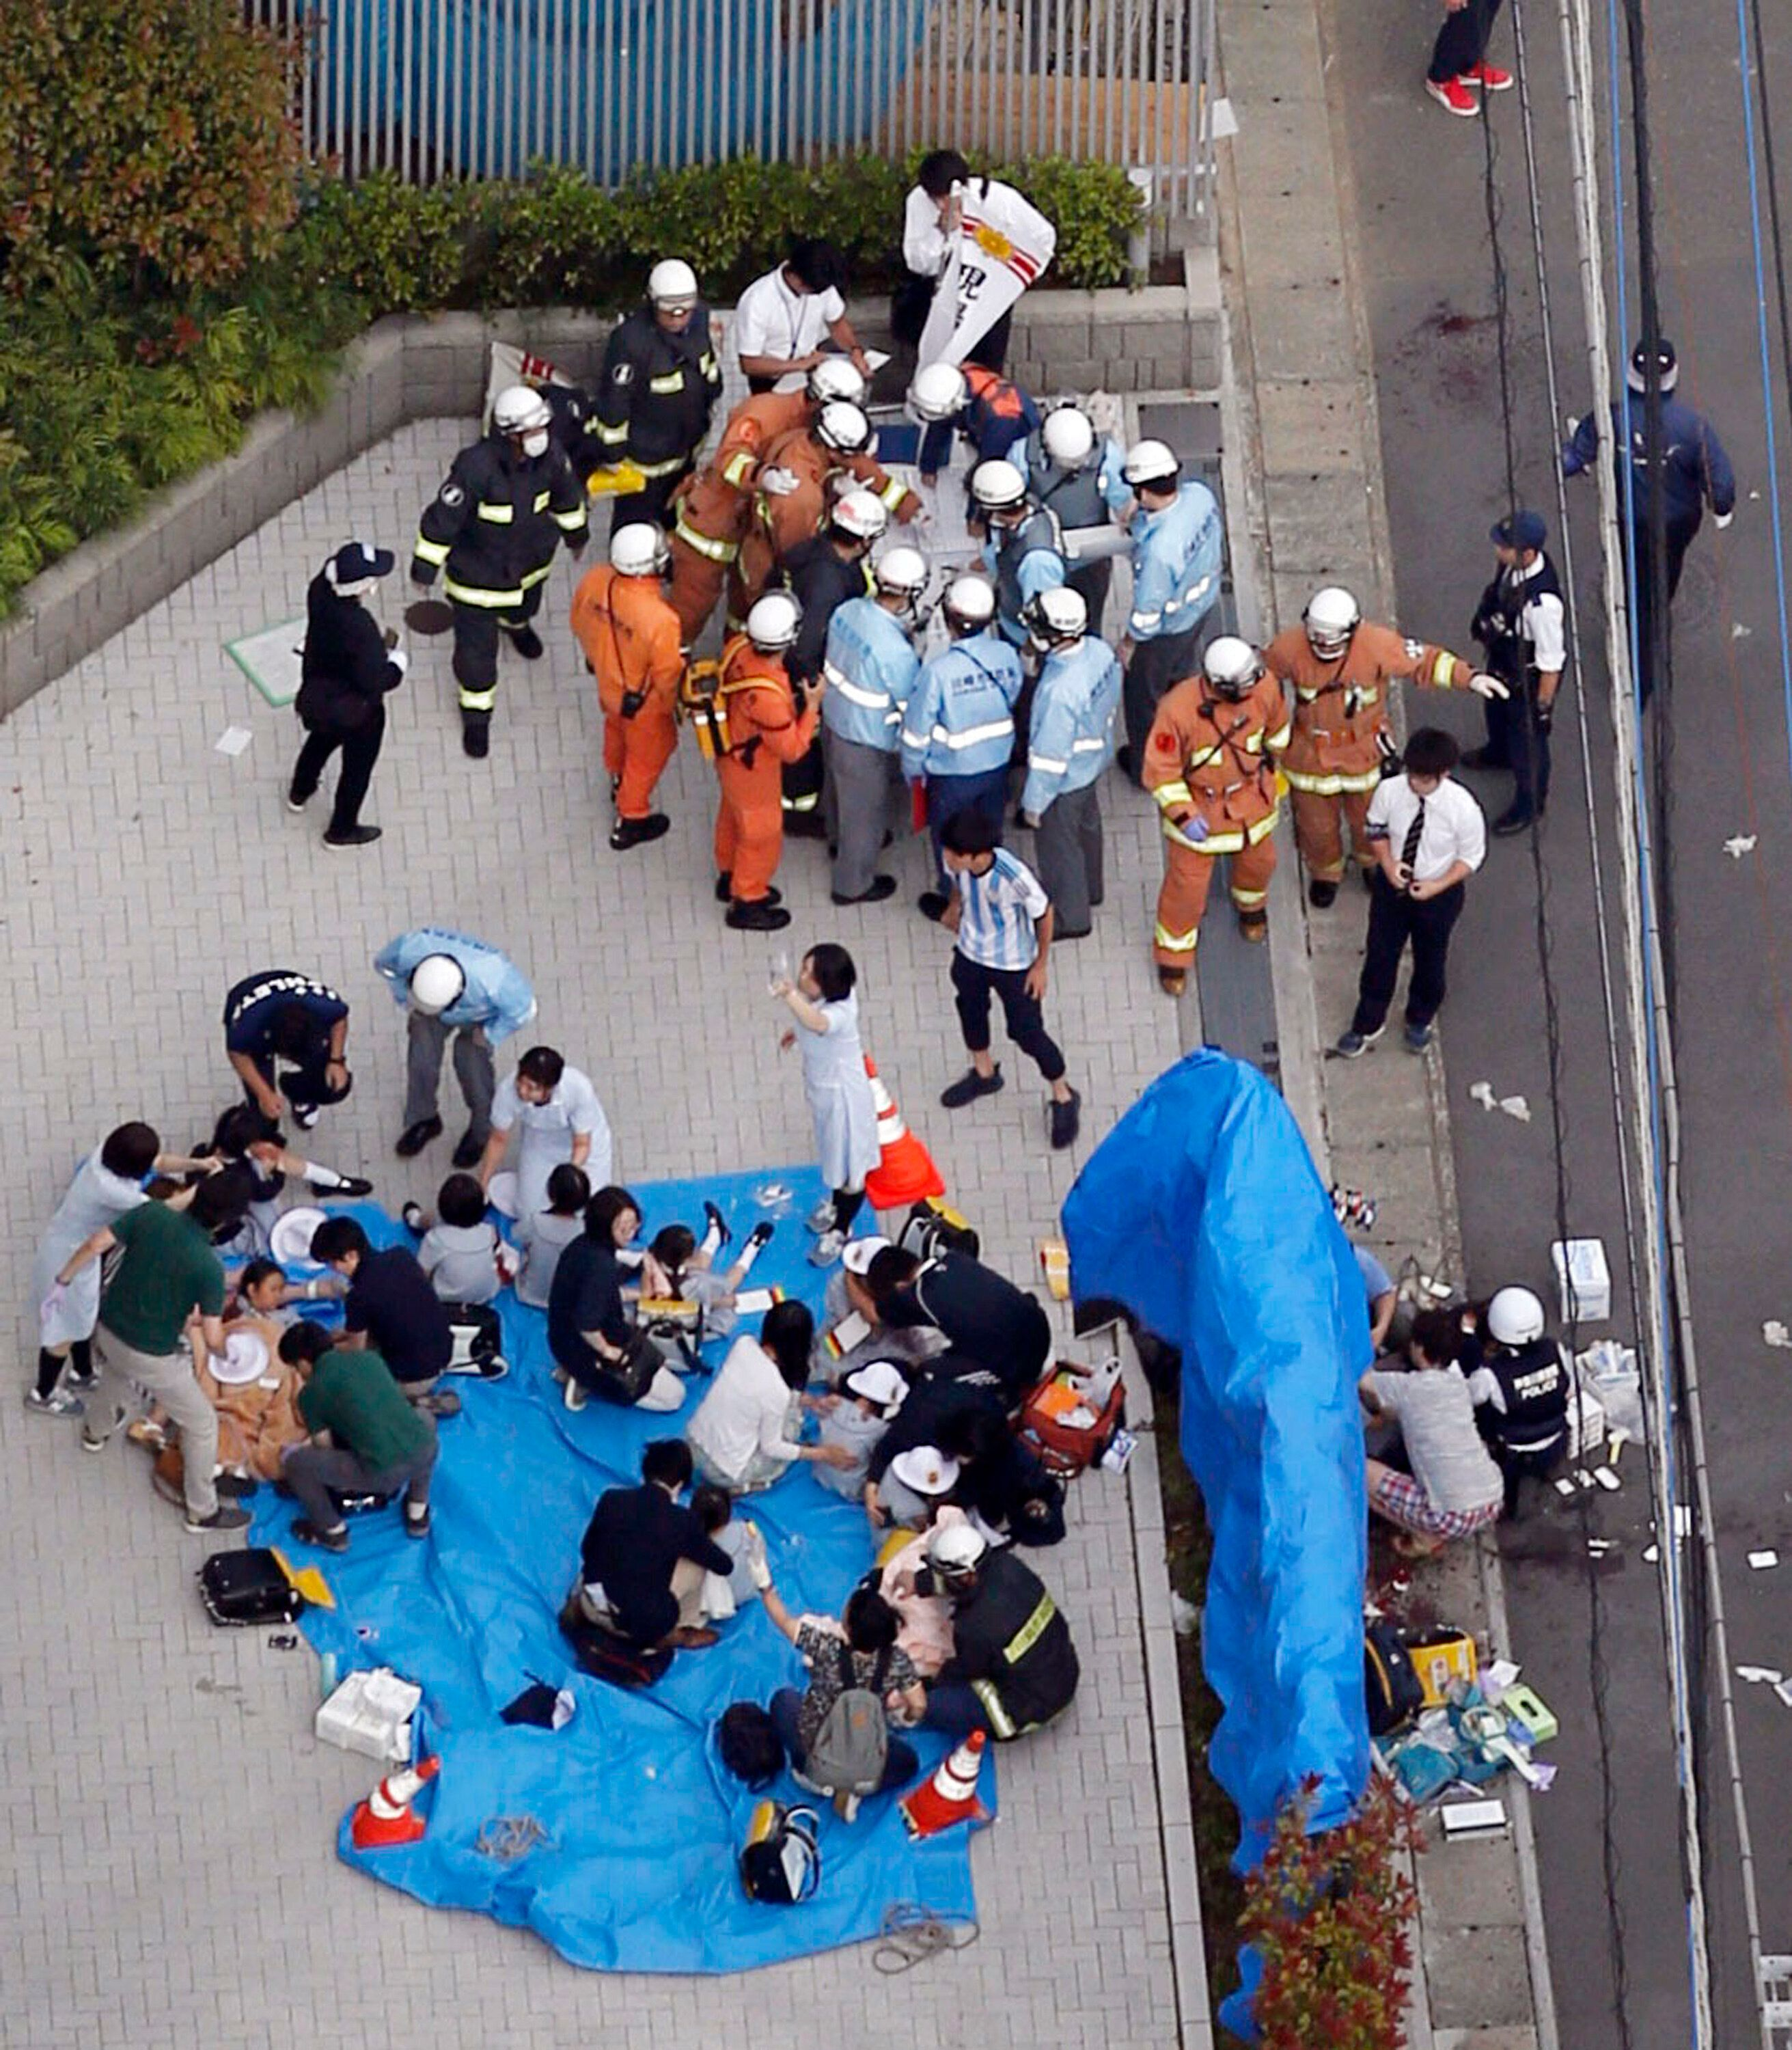 Scene of the knife attack in Kawasaki City, Japan, on May 28, 2019.